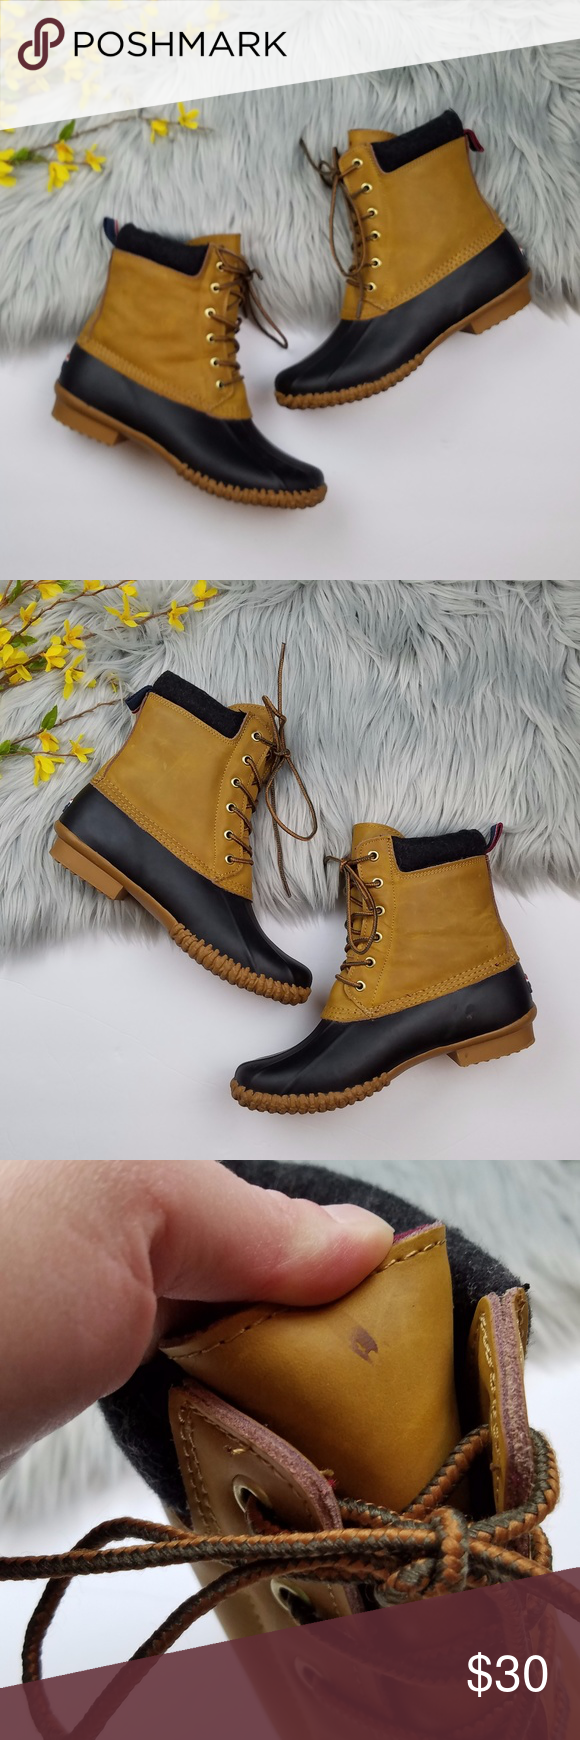 f18c74c55b3dff Tommy Hilfiger Charlie Duck Boots Light brown leather boots with black  rubber detailing along the bottom. Charcoal grey wool around the tops.